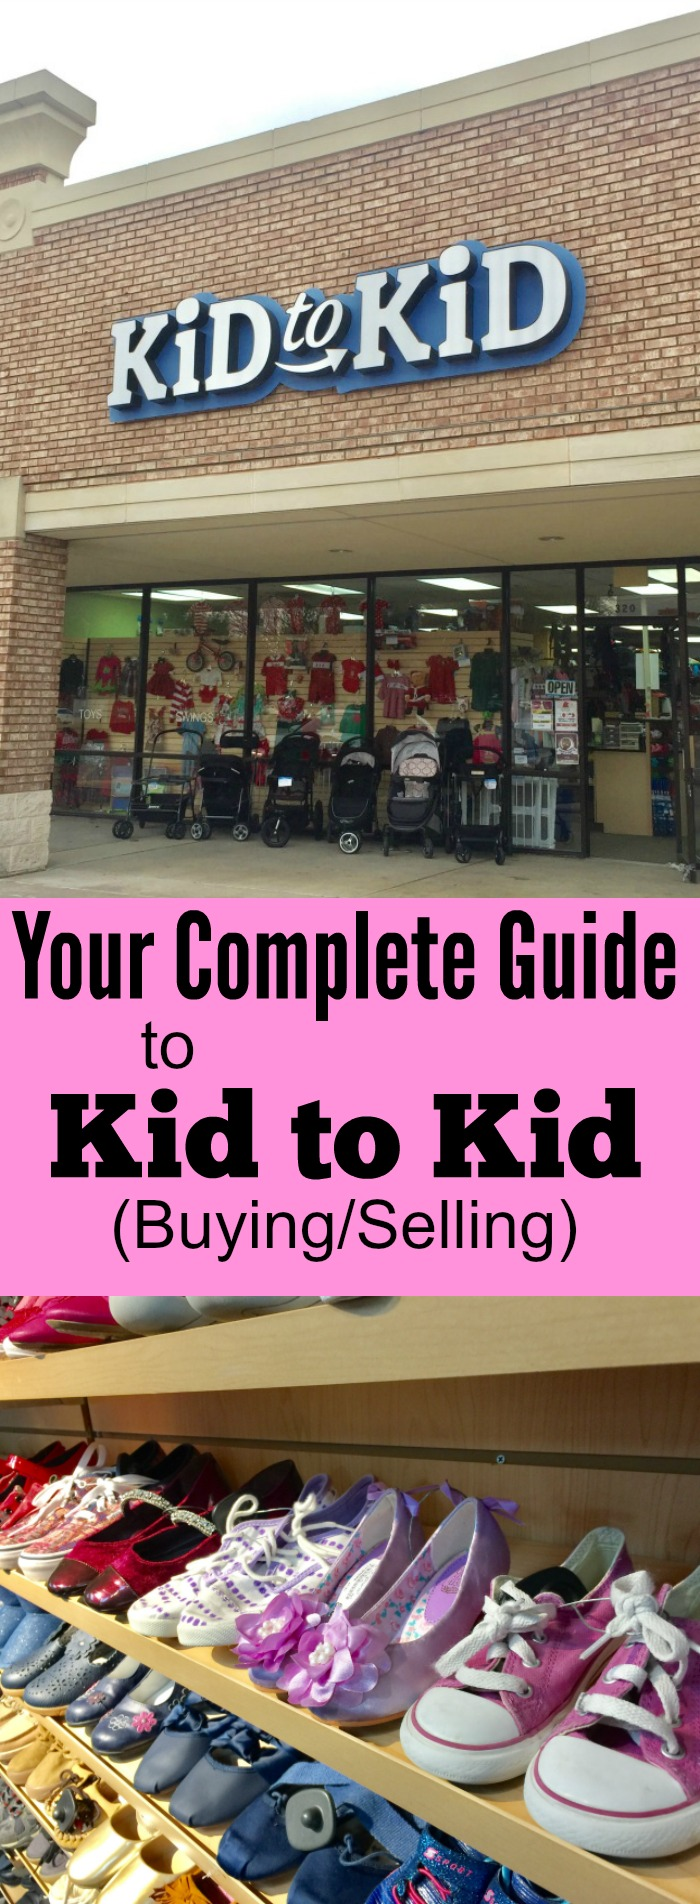 Kid to Kid Your Complete Guide to Buying and Selling Childrens Clothes, Shoes, Toys and more.